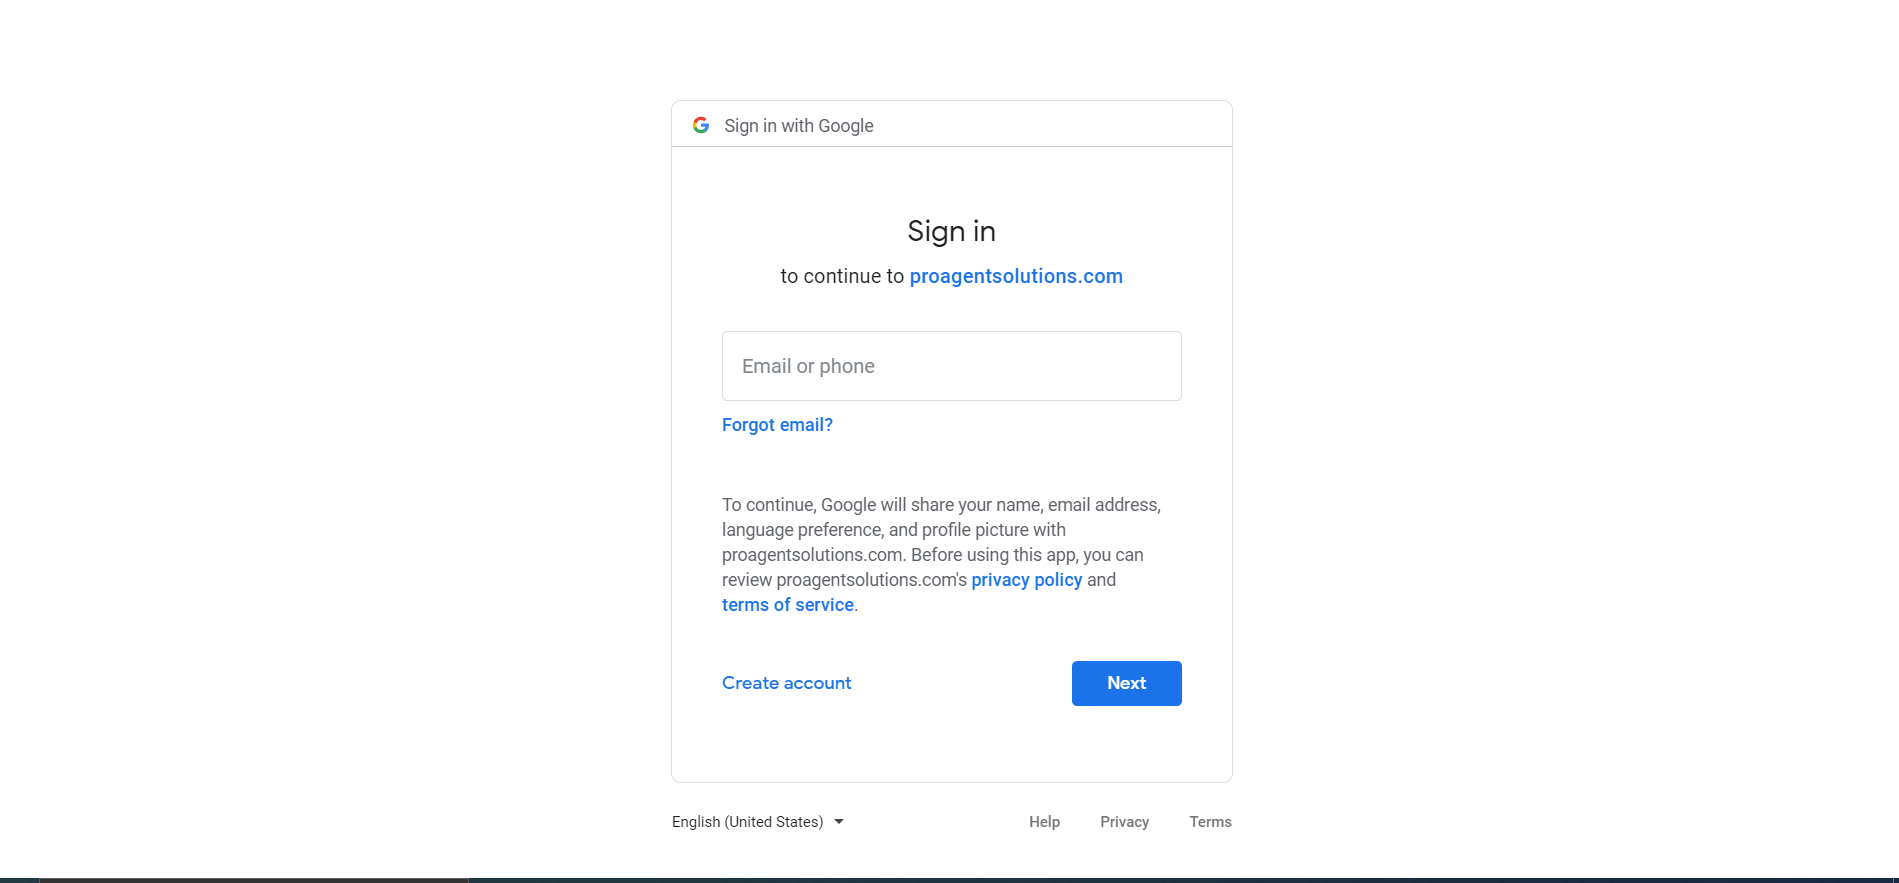 2019-11-21_03_21_50-Sign_in_-_Google_Accounts.png